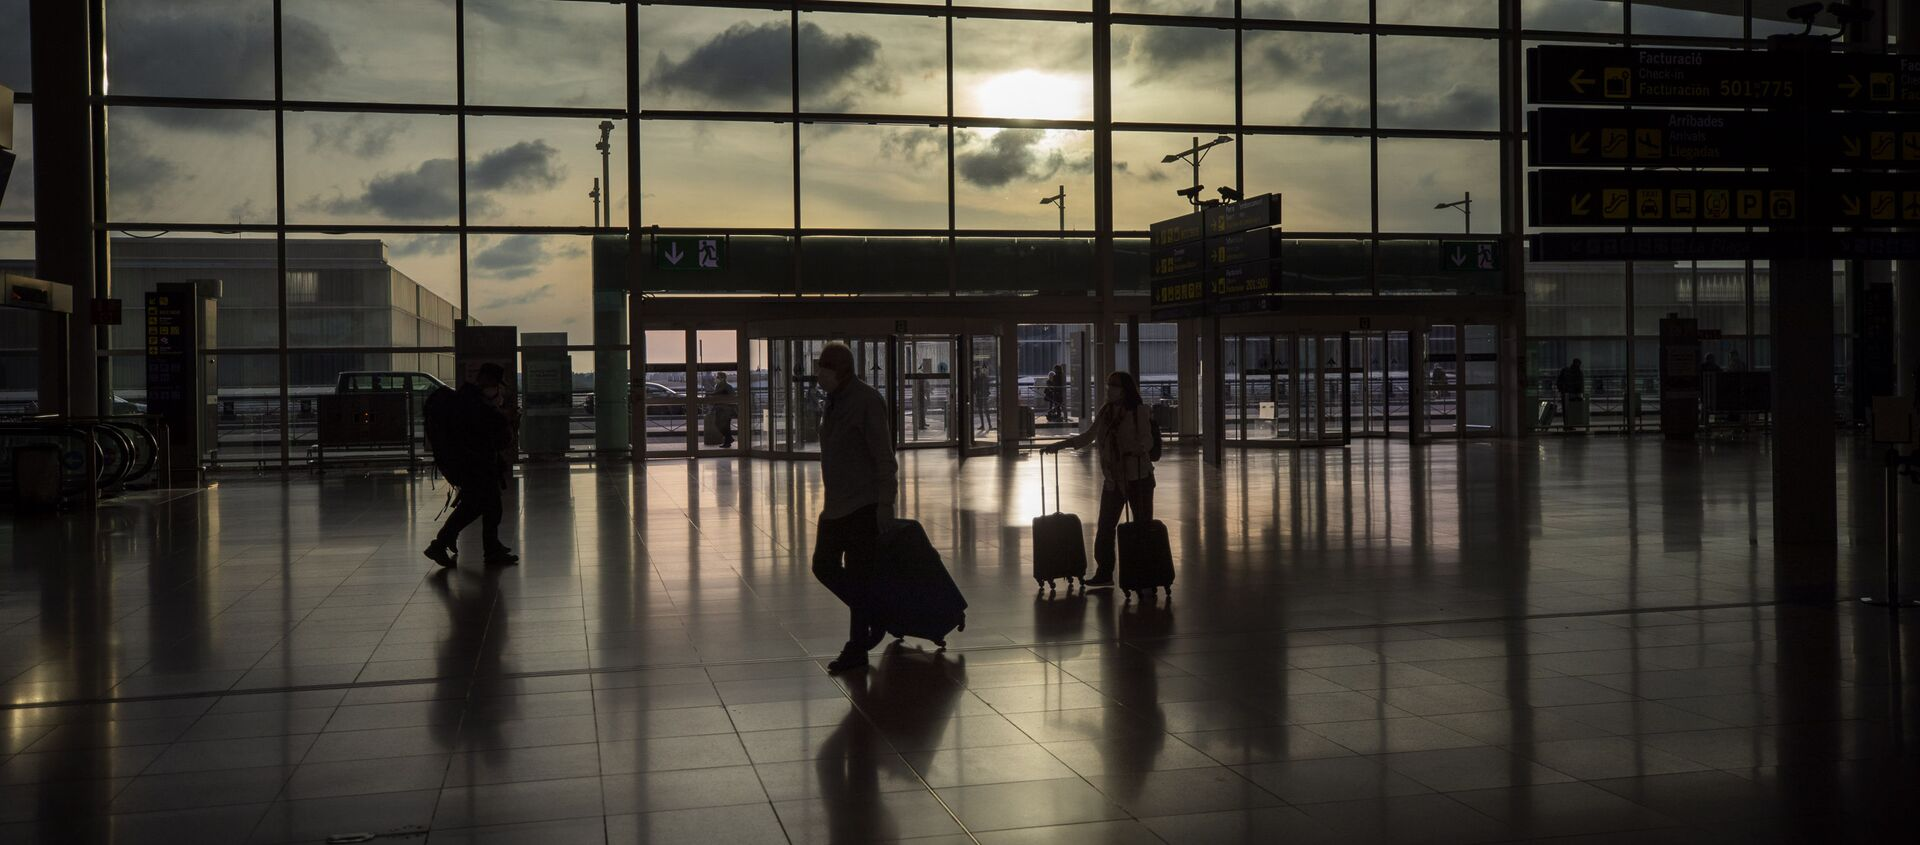 Passengers walk in an empty terminal at the airport of Barcelona, Spain, Thursday, March 19, 2020 - Sputnik International, 1920, 23.05.2020